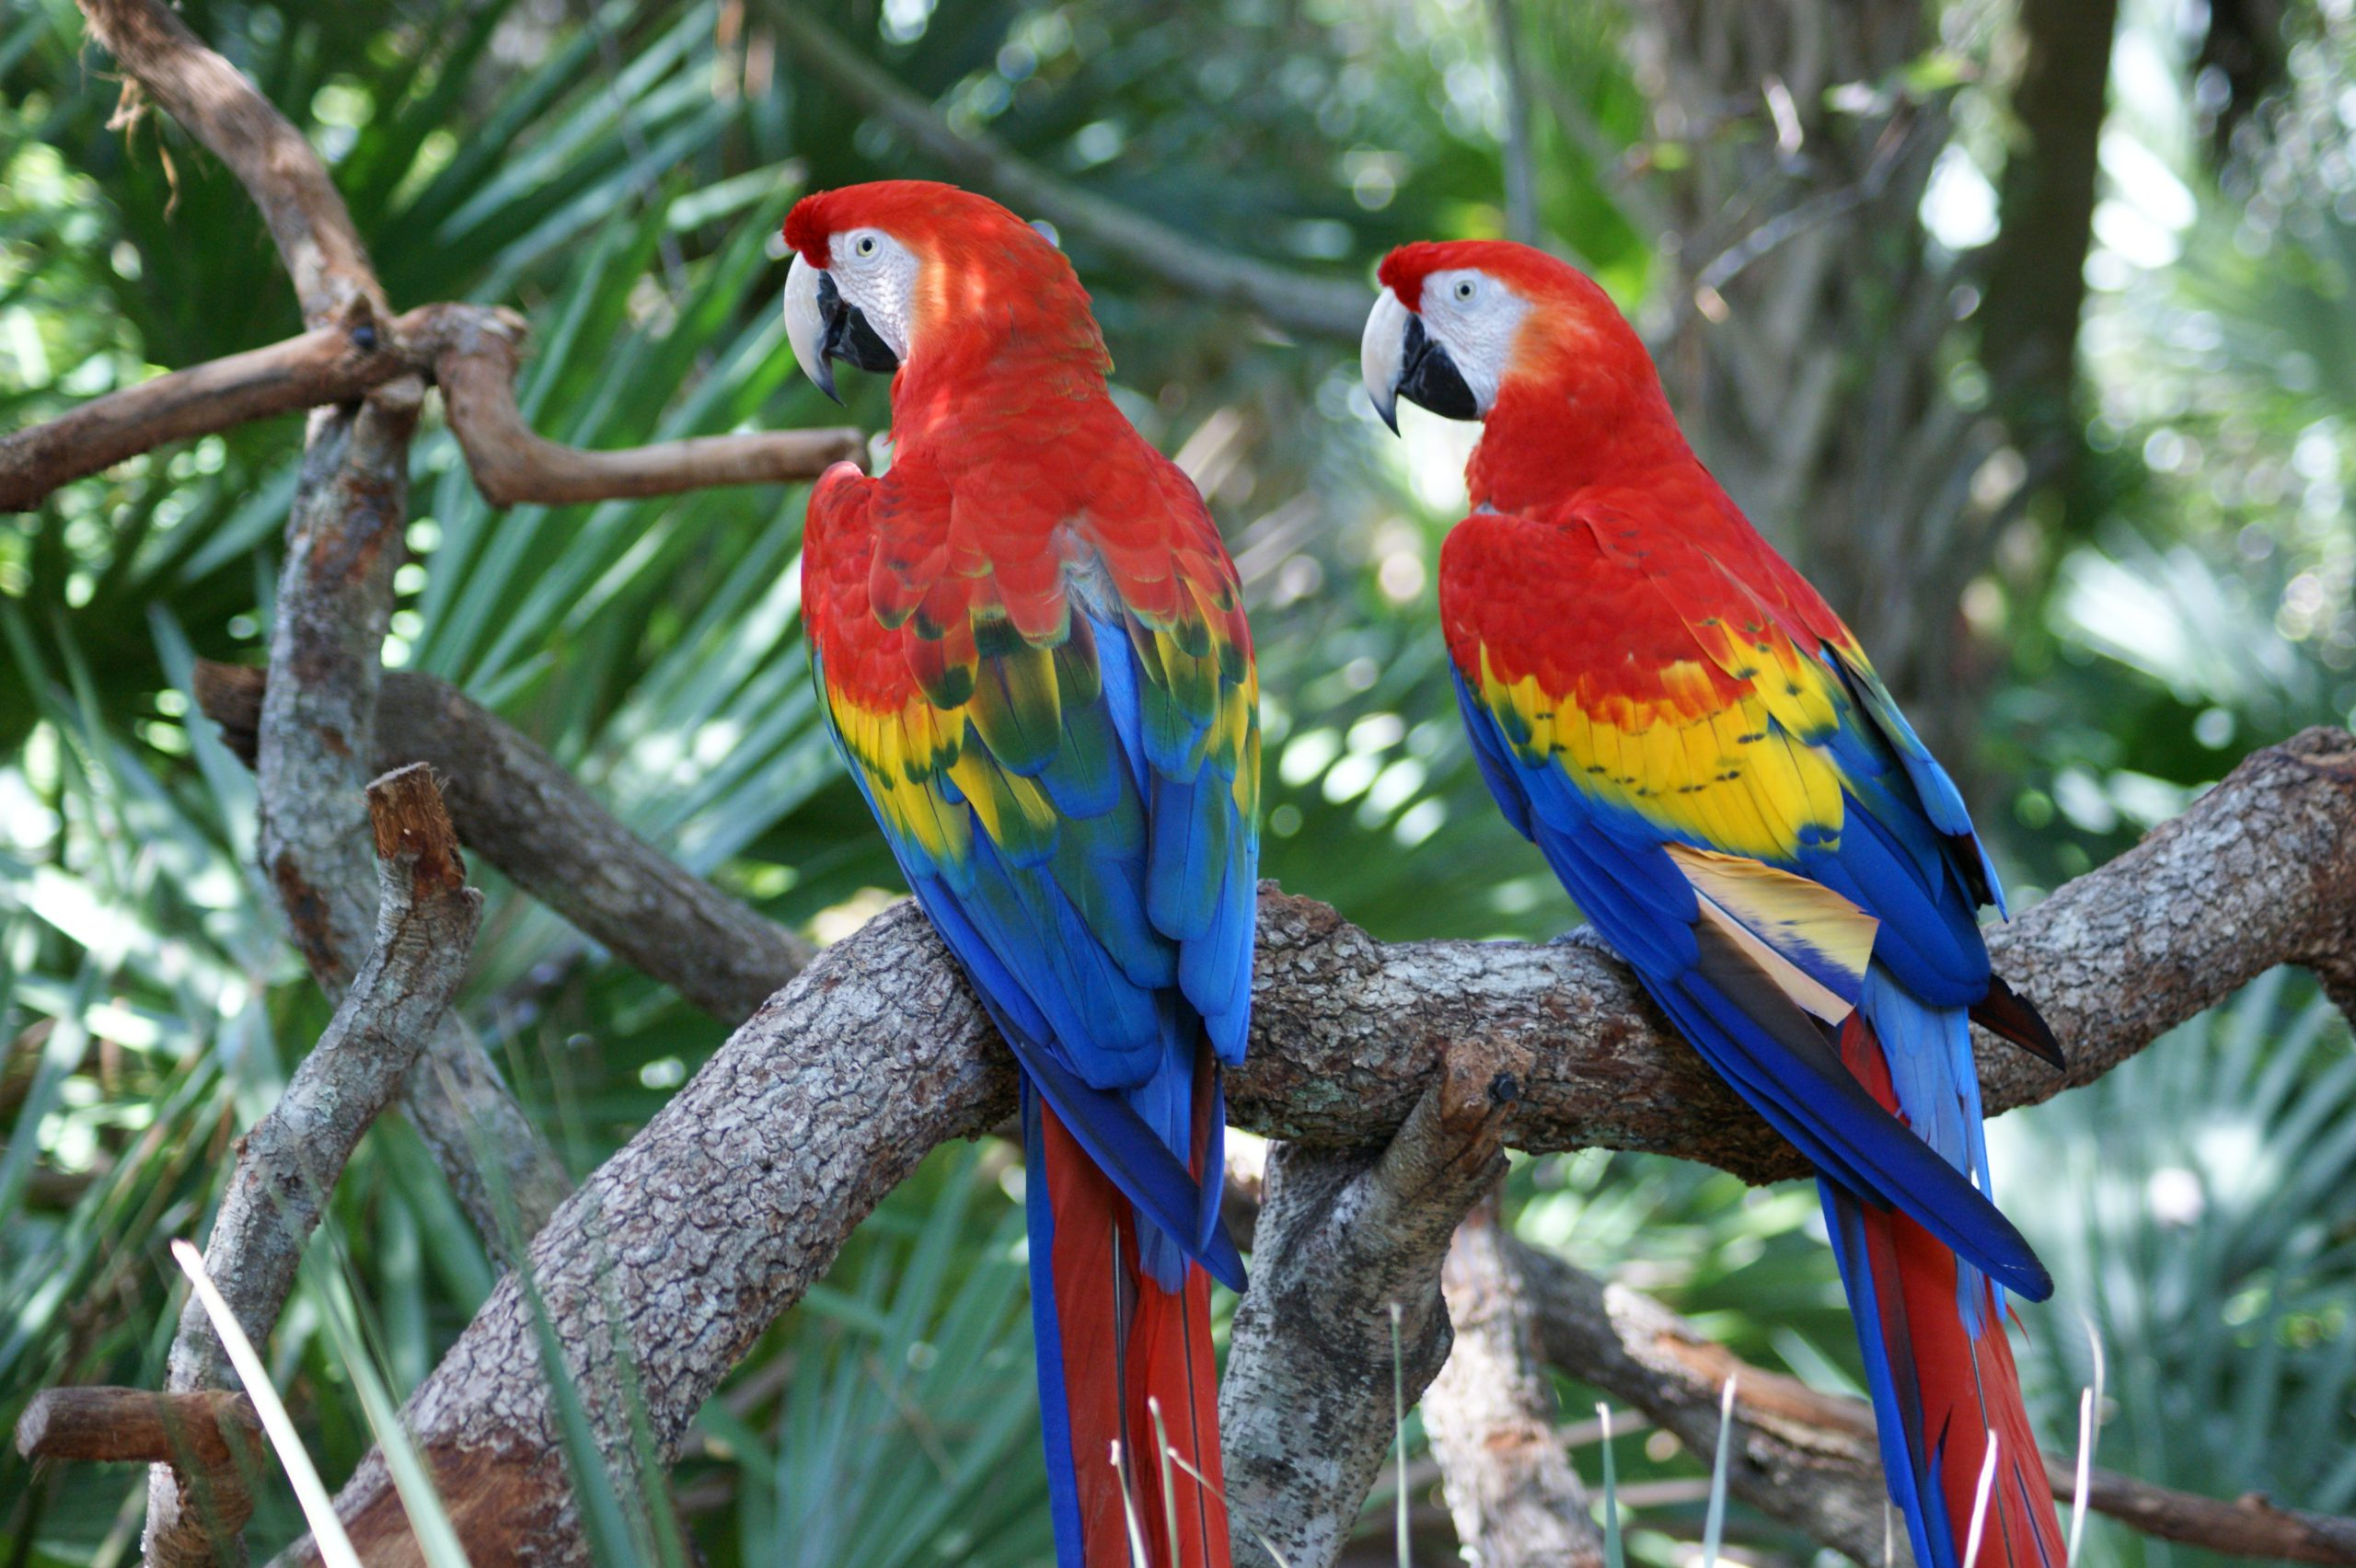 school_expedition_ecuador_galapagos_macaw_parrots